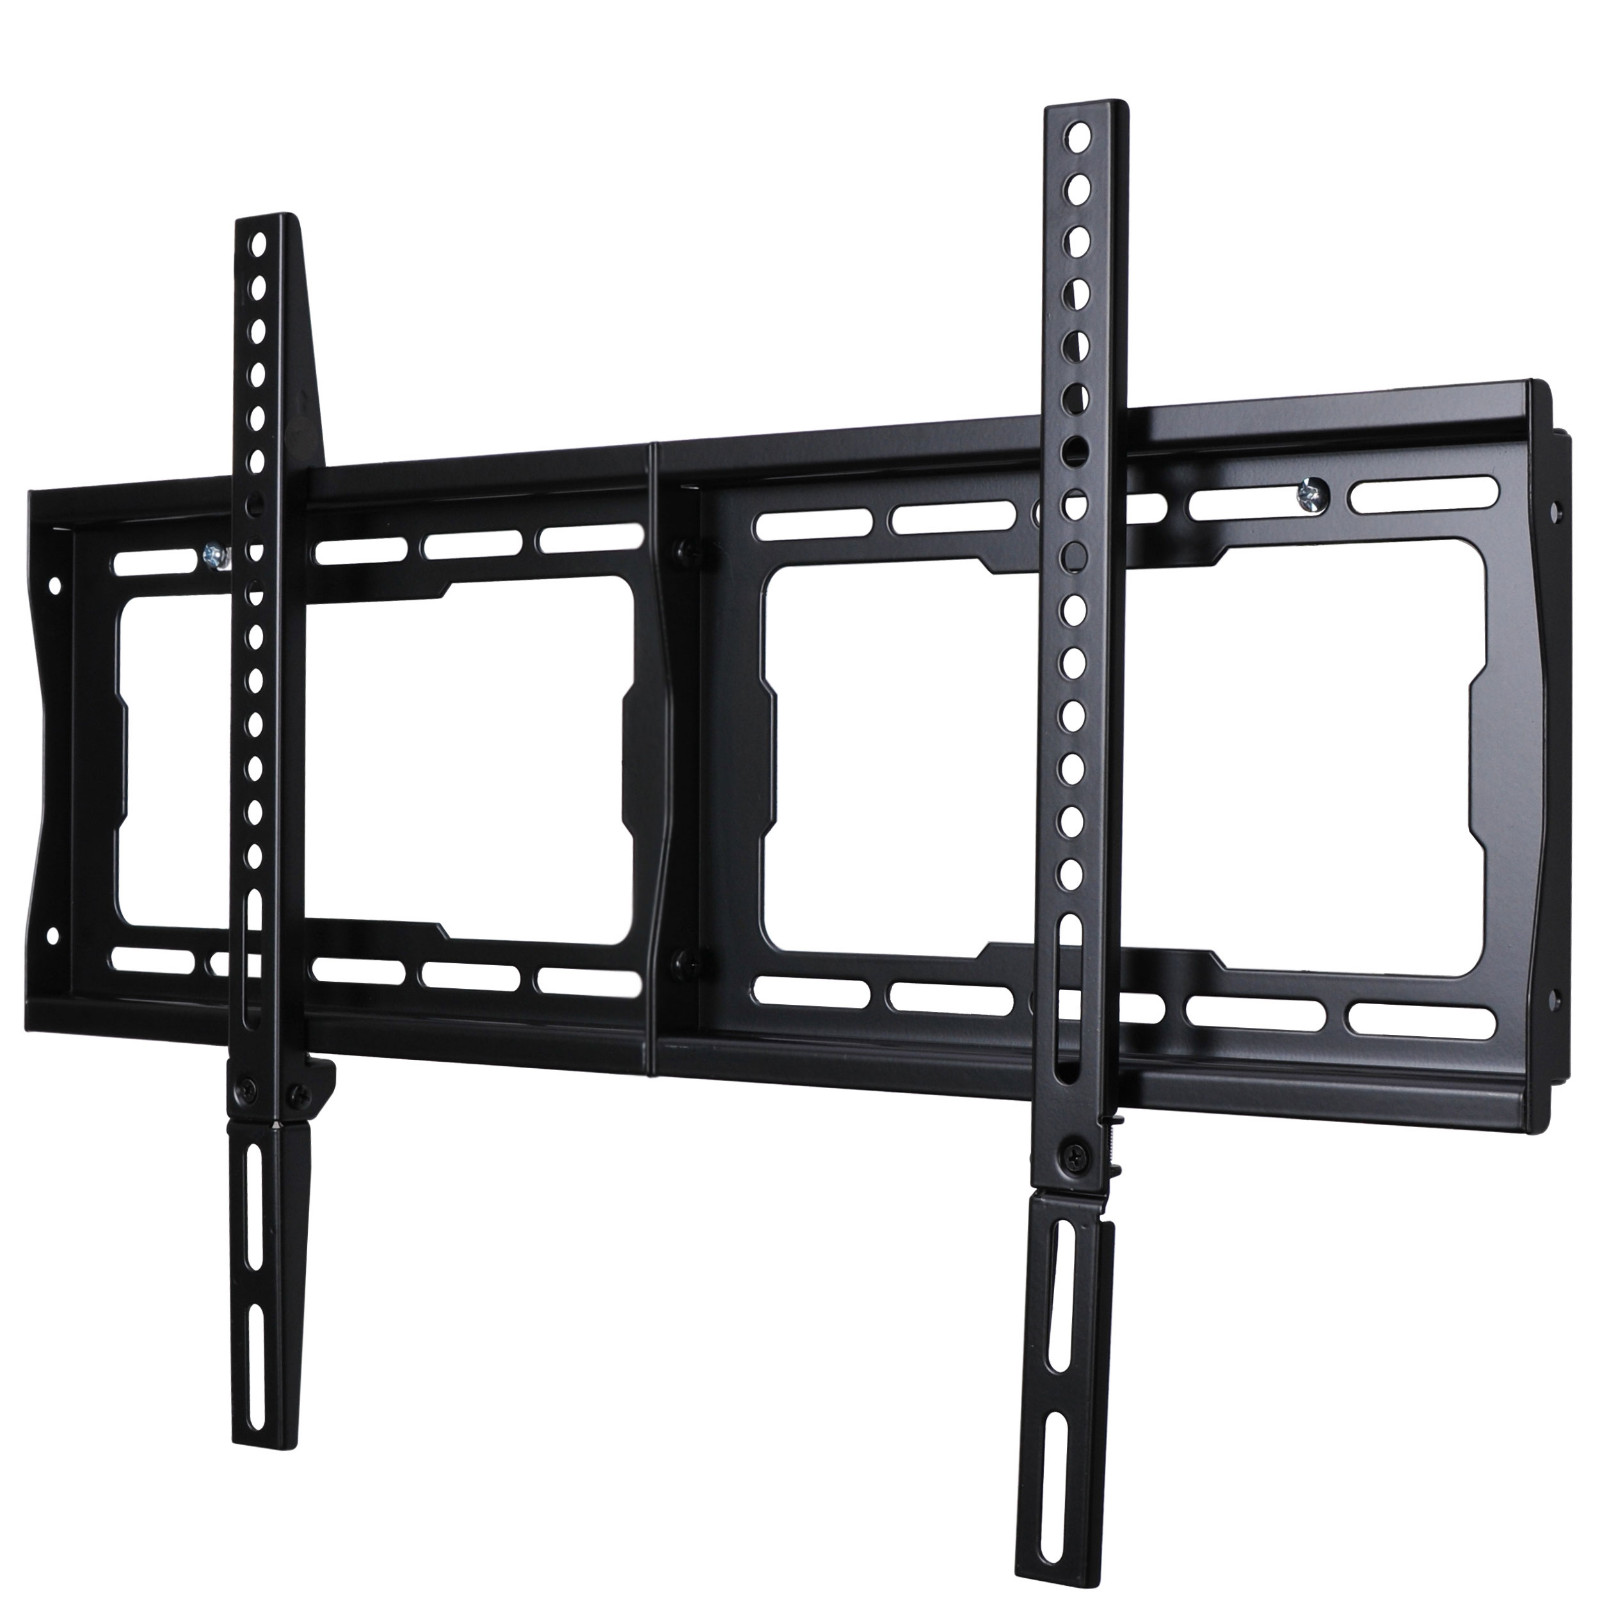 VideoSecu TV Wall Mount for Vizio 32-70 inch LED LCD Plasma HDTV Display D55-E0 D55f-E2 D55n-E2 E55-E1 M55-E0 P55-E1 E60-E3 D65-E0 E65-E0 E65-E1 M65-D0 M65-E0 P65-E1 E70-E3 M70-E3 E75-E3 M75-E1 B35